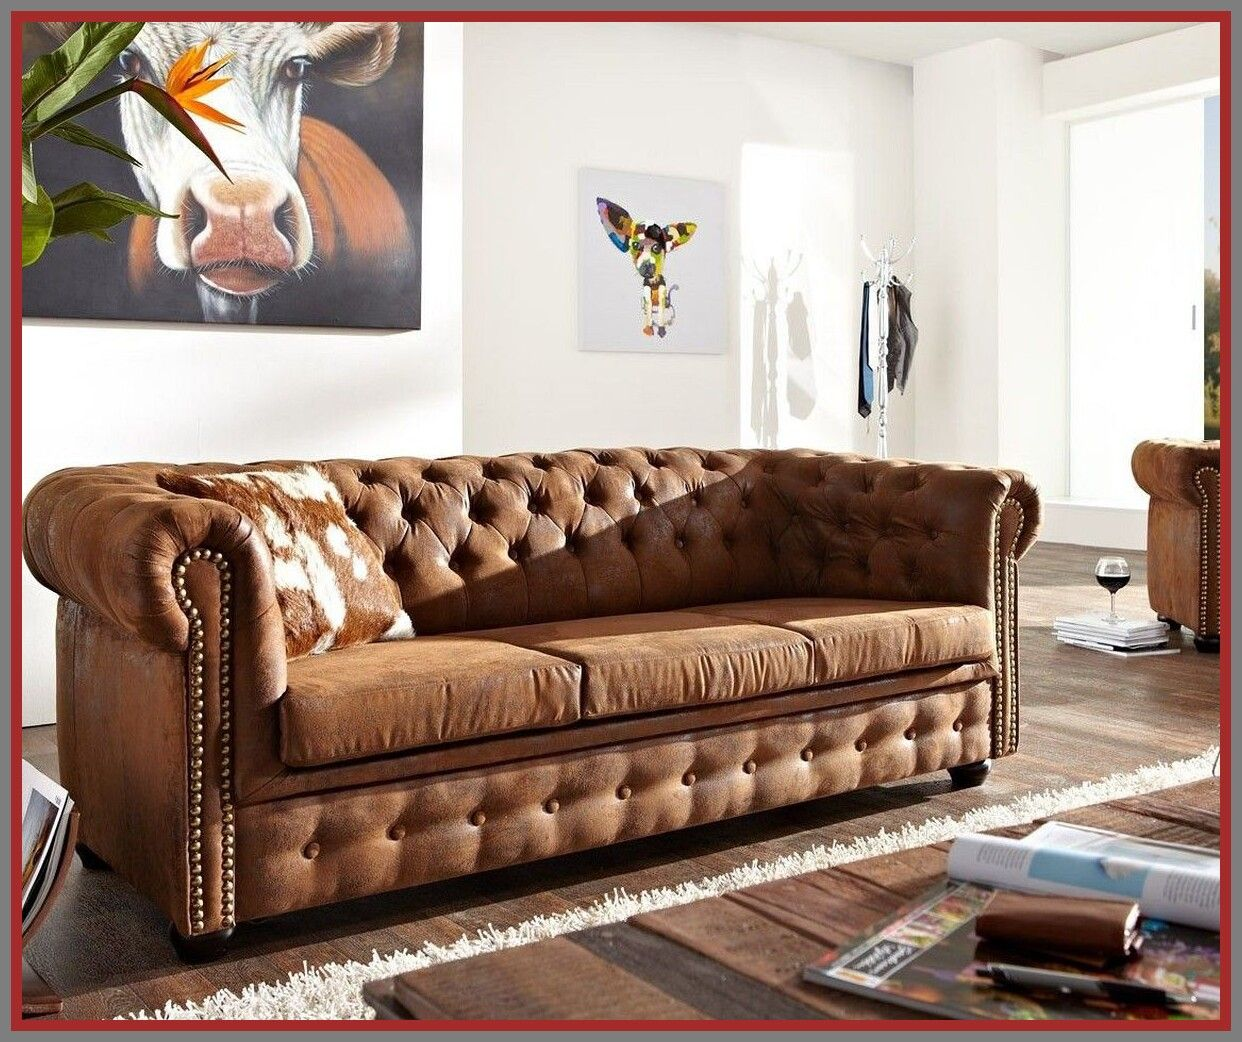 110 Reference Of Couch Braun Hardeck In 2020 Couch Design Couch Vintage Chesterfield Sofa